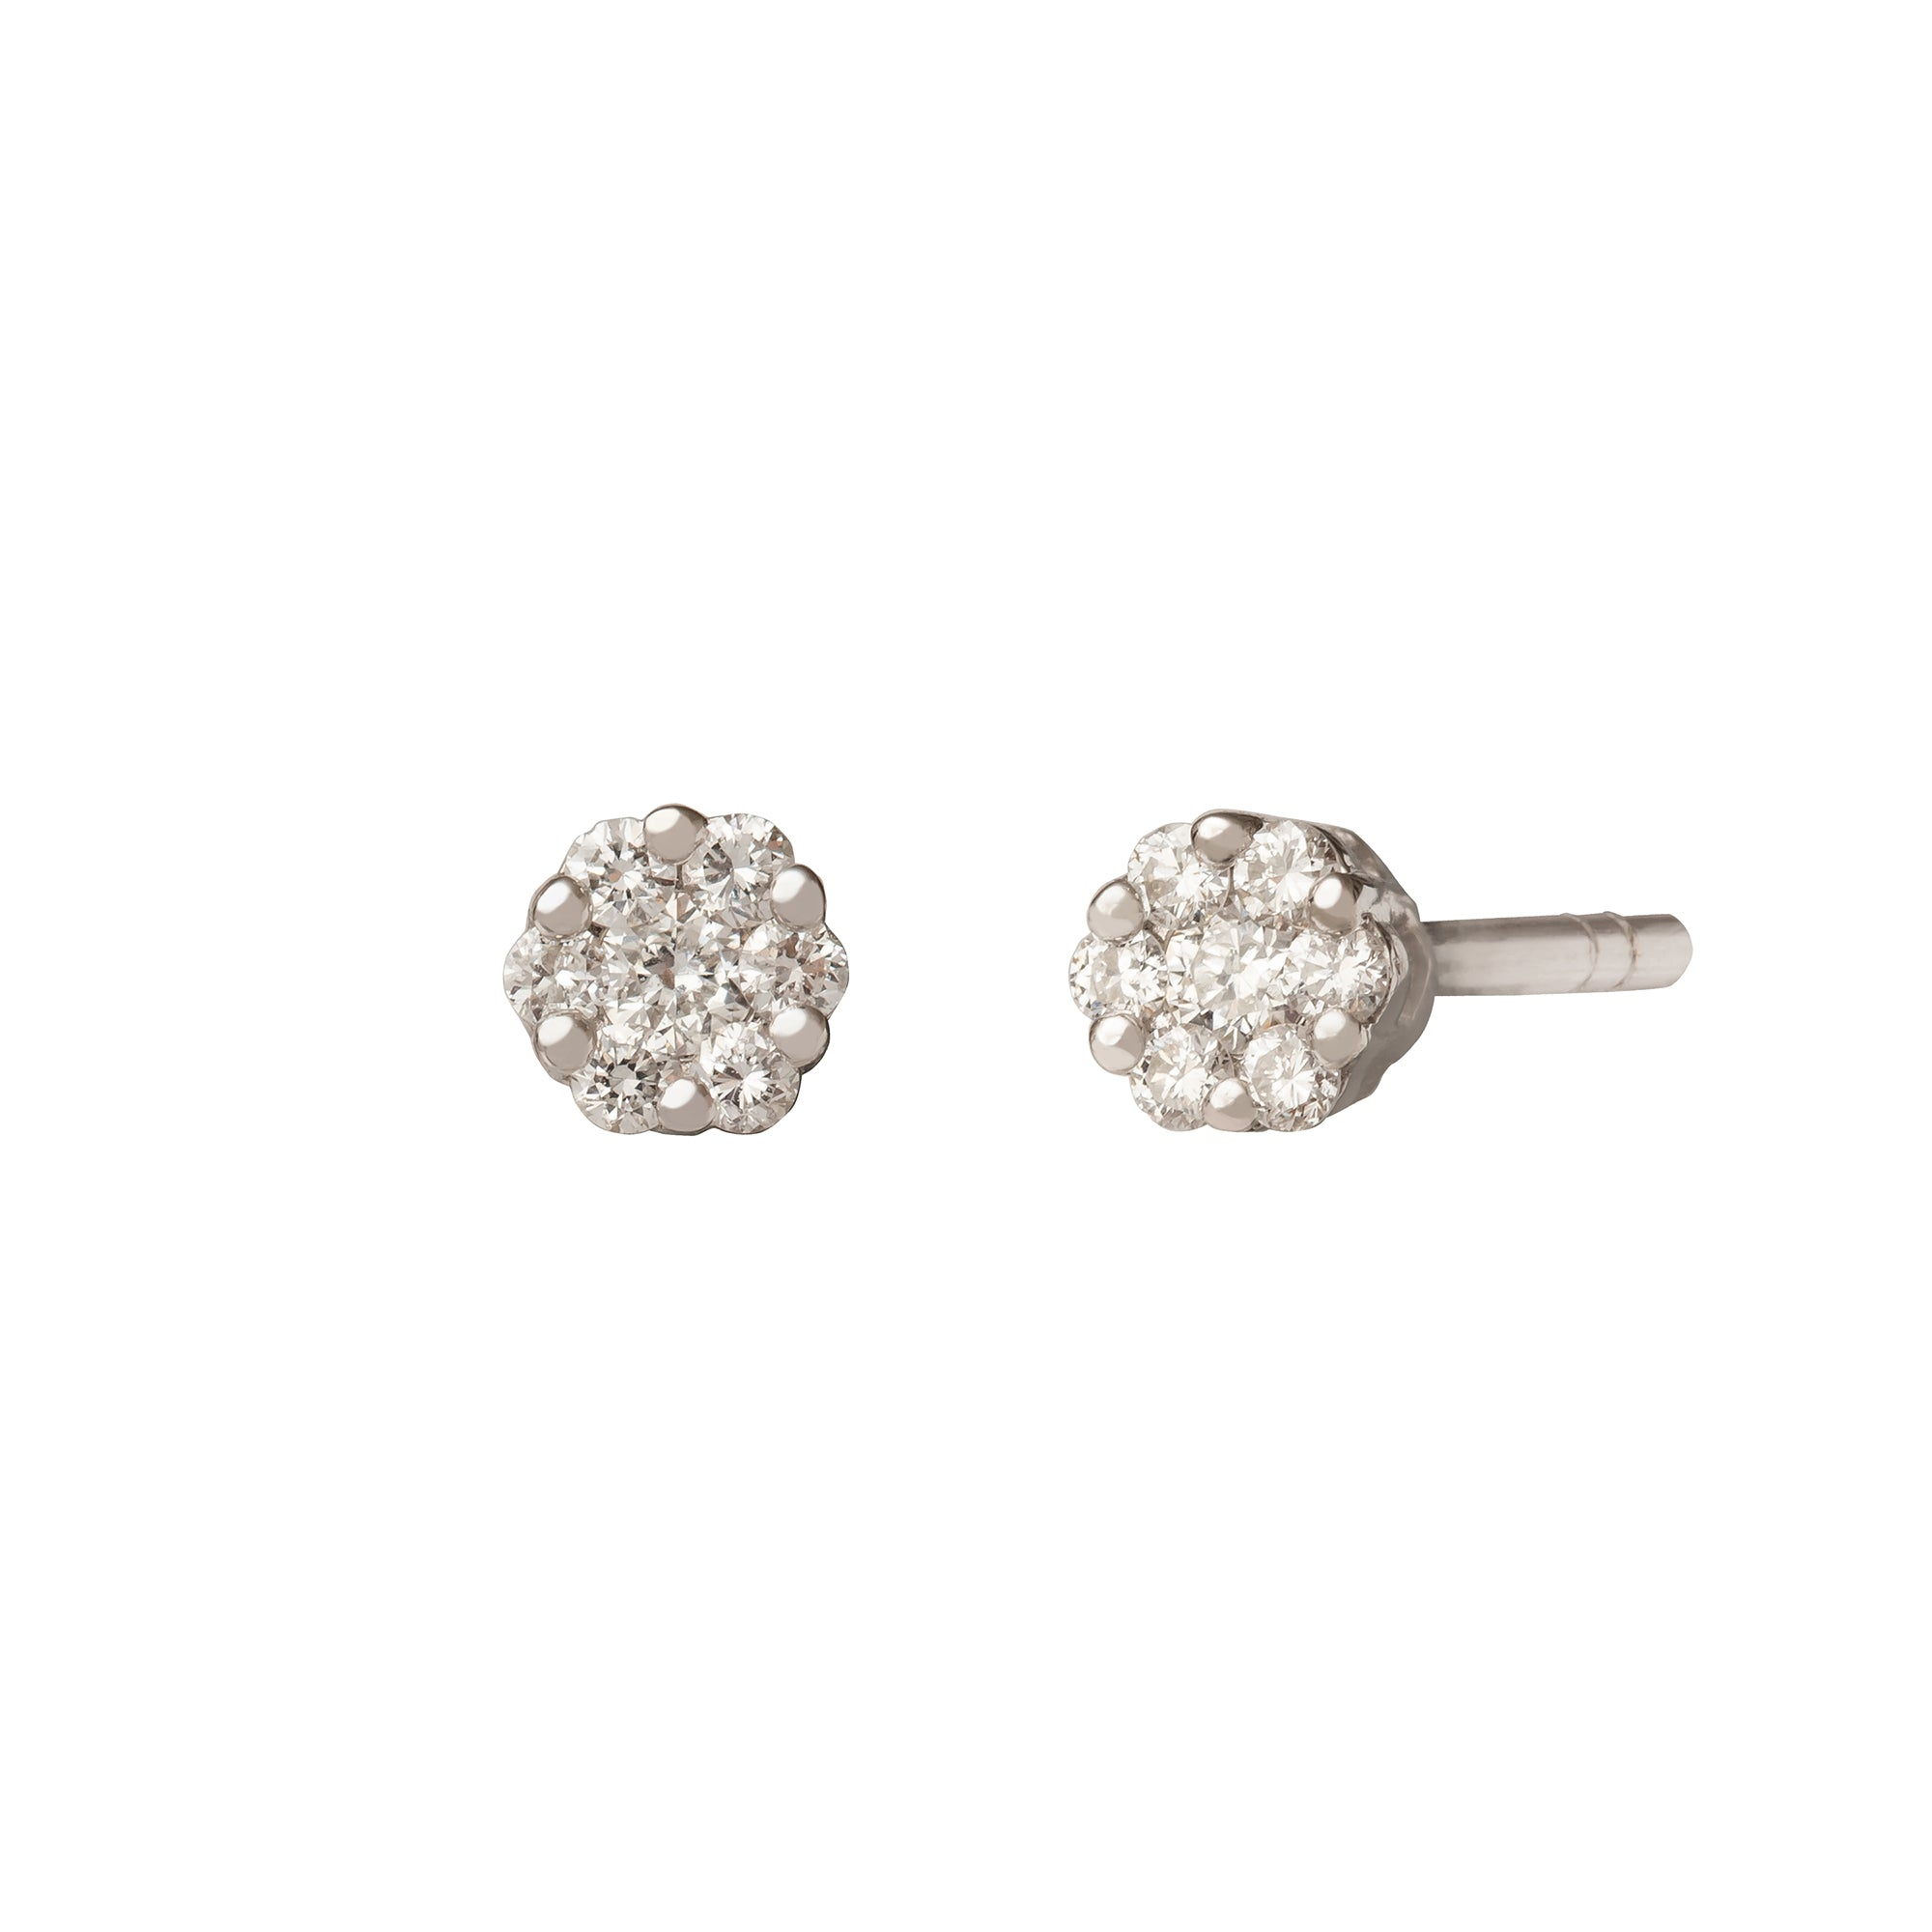 Cluster Diamond Stud Earring - Rosa de la Cruz - Earrings | Broken English Jewelry